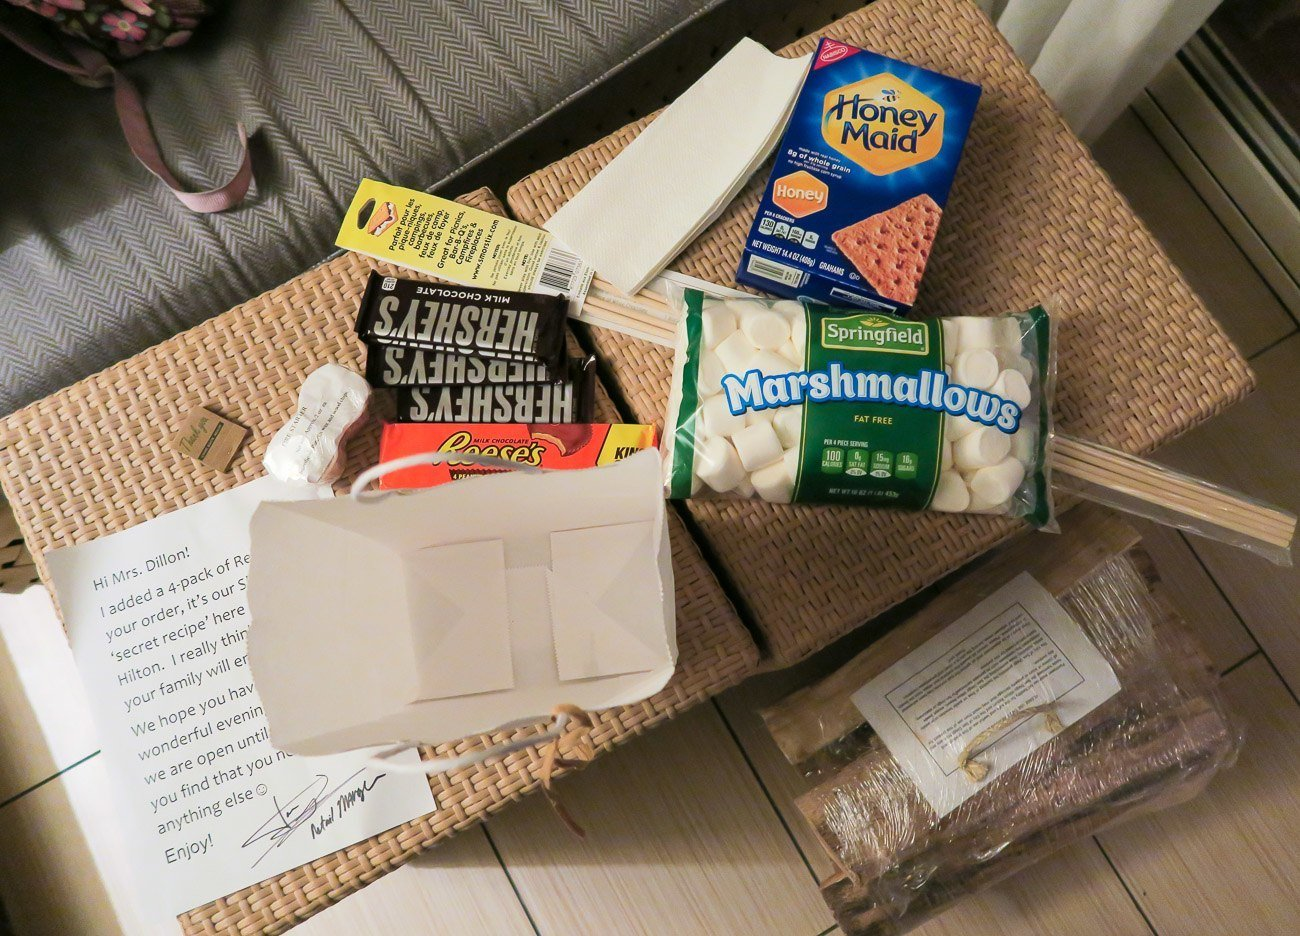 S'mores kit from Hilton San Diego Mission Bay Resort and Spa to use in our room's fire pit.